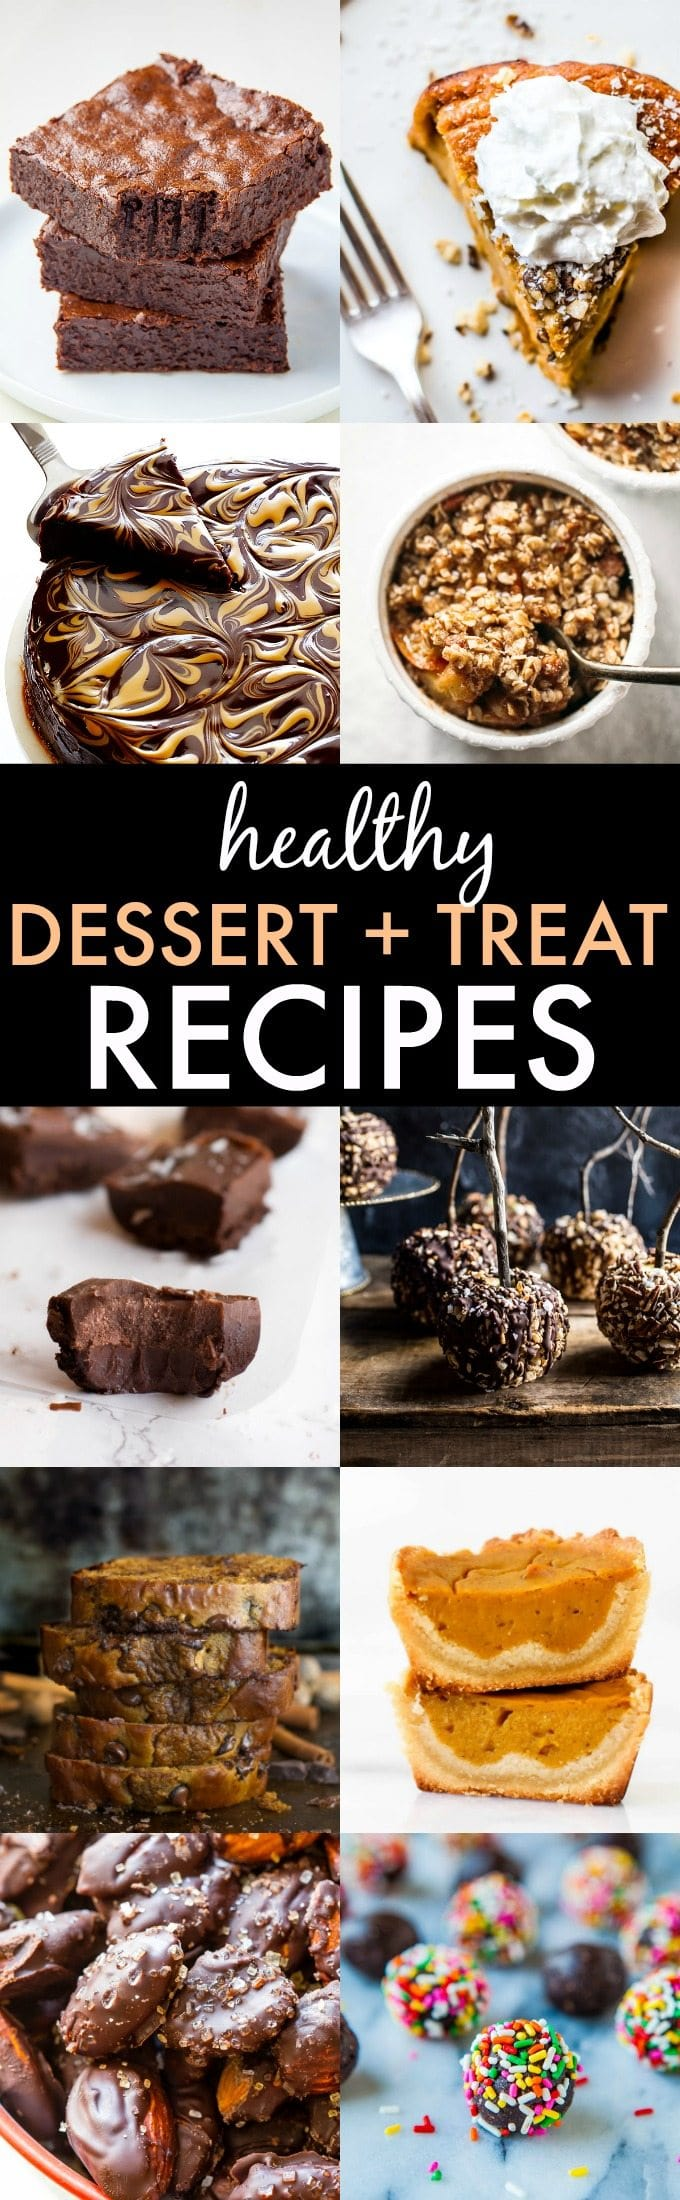 The BEST Skinny and Healthy Holiday Desserts, treats and sweets- Hands down, the BEST dessert and treat recipes ever and ALL healthy recipes! {vegan, gluten free, sugar free, paleo recipe options}- thebigmansworld.com